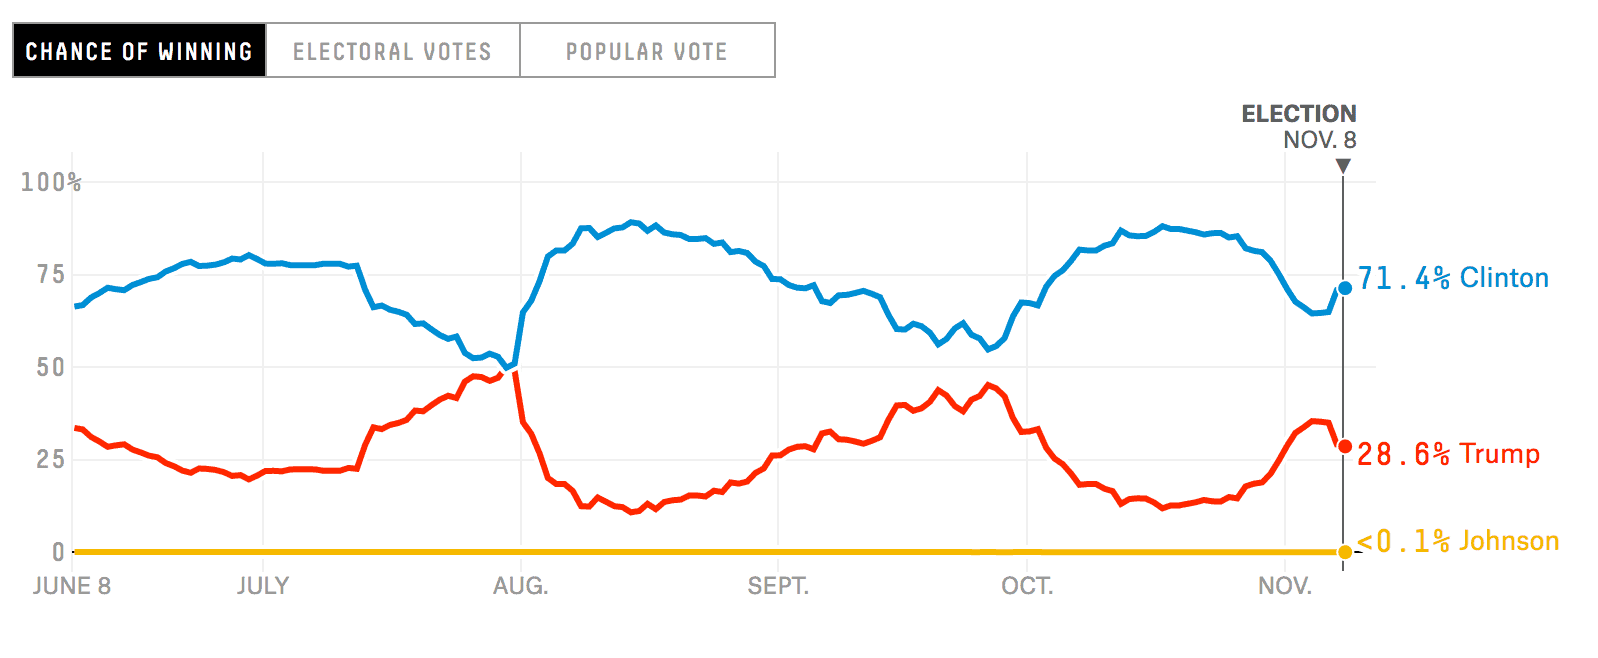 election_2016-chance-of-winning_line